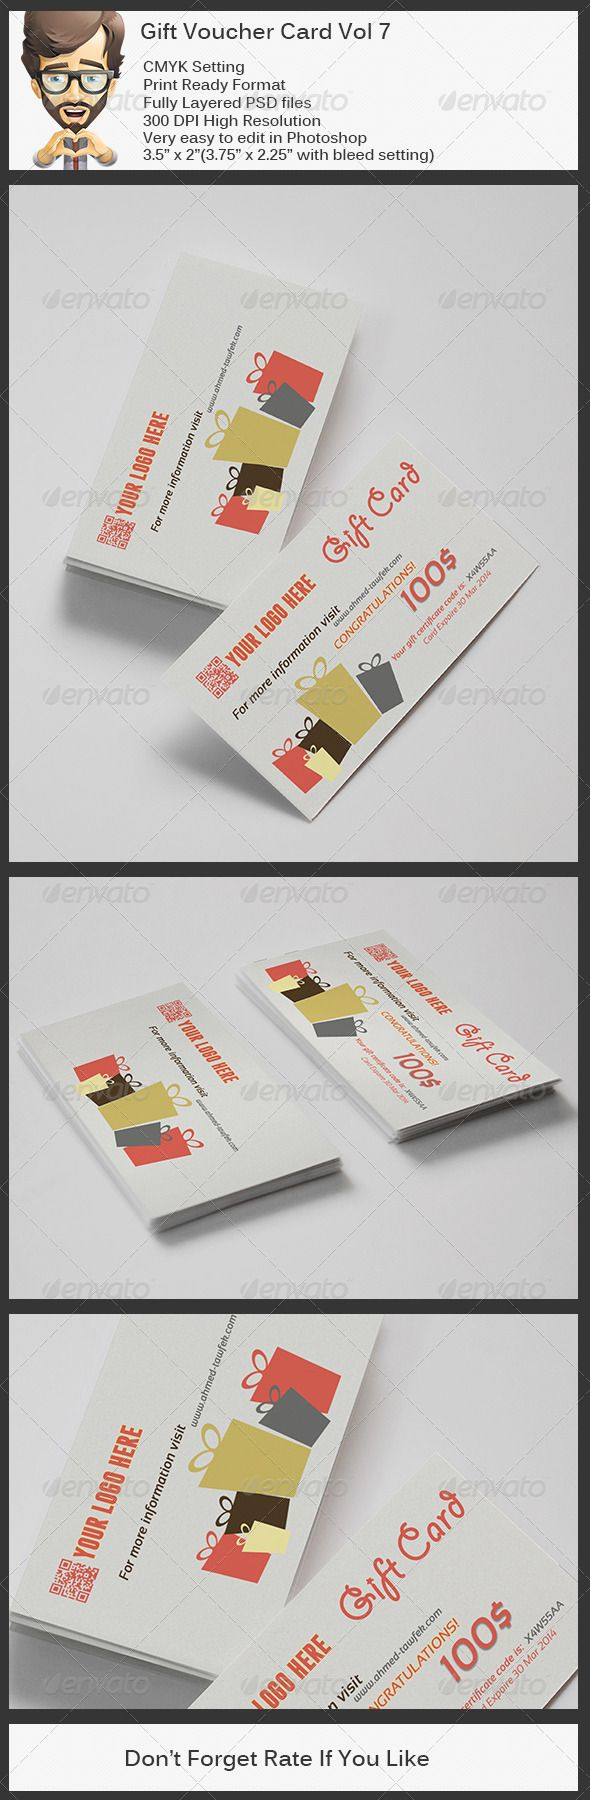 Gift Voucher Format Gift Voucher Card Vol 7  Psd Template  Only Available Here ➝ Http .